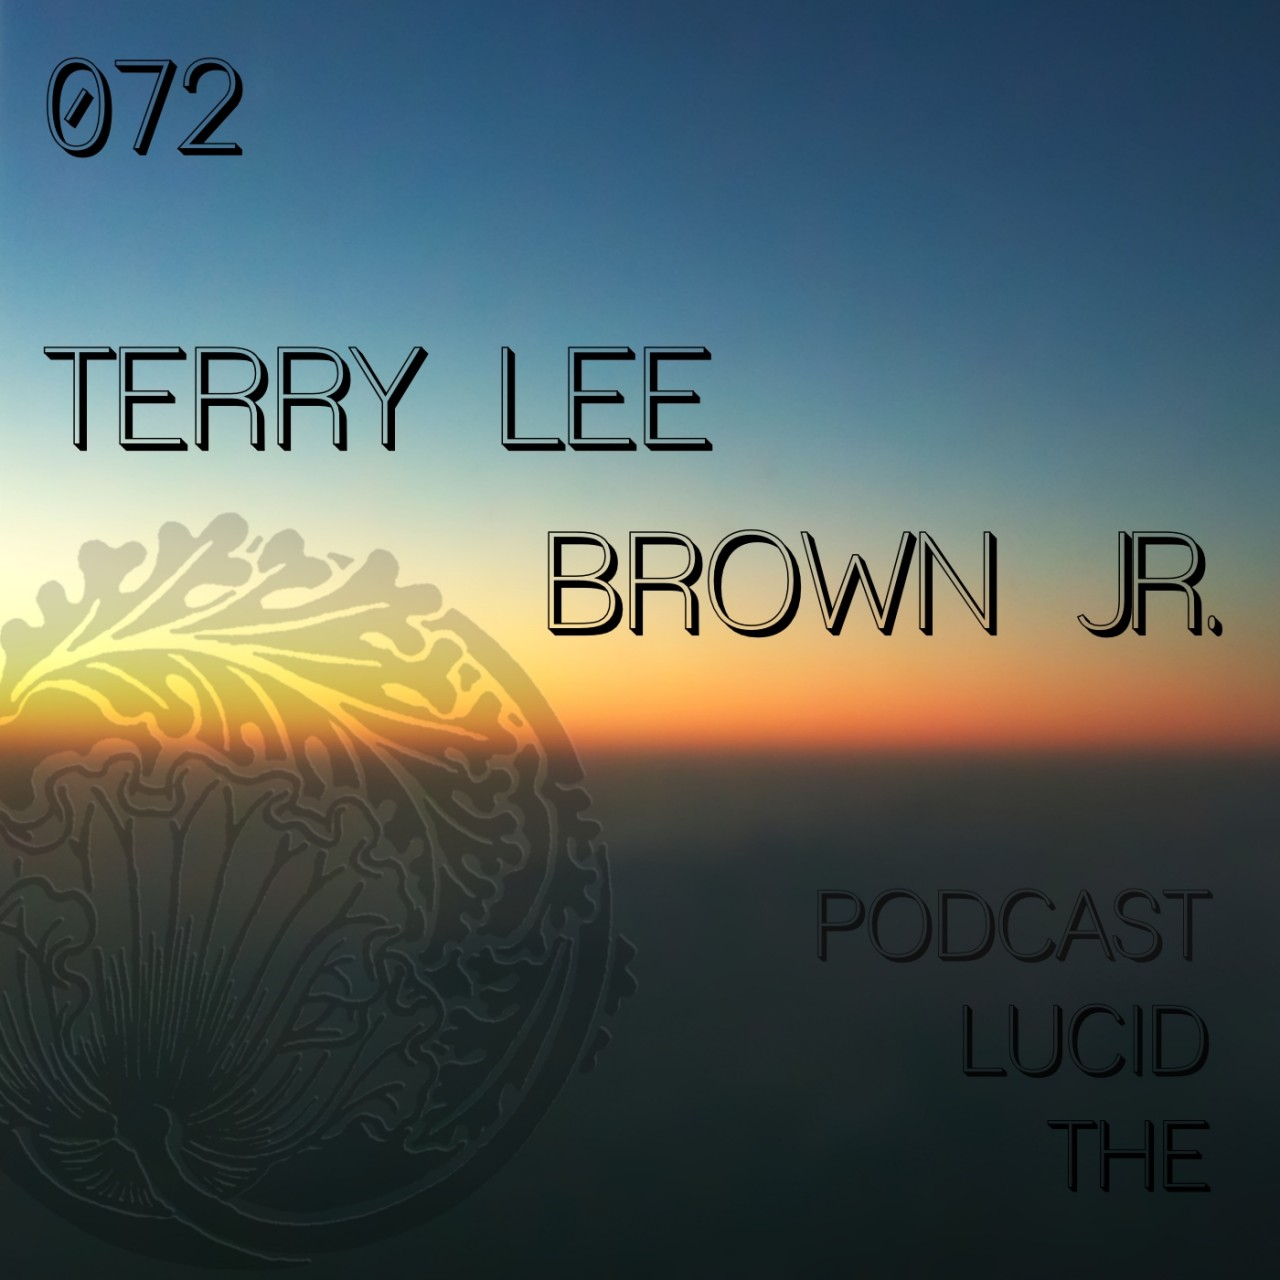 The Lucid Podcast 072 Terry Lee Brown Jr.